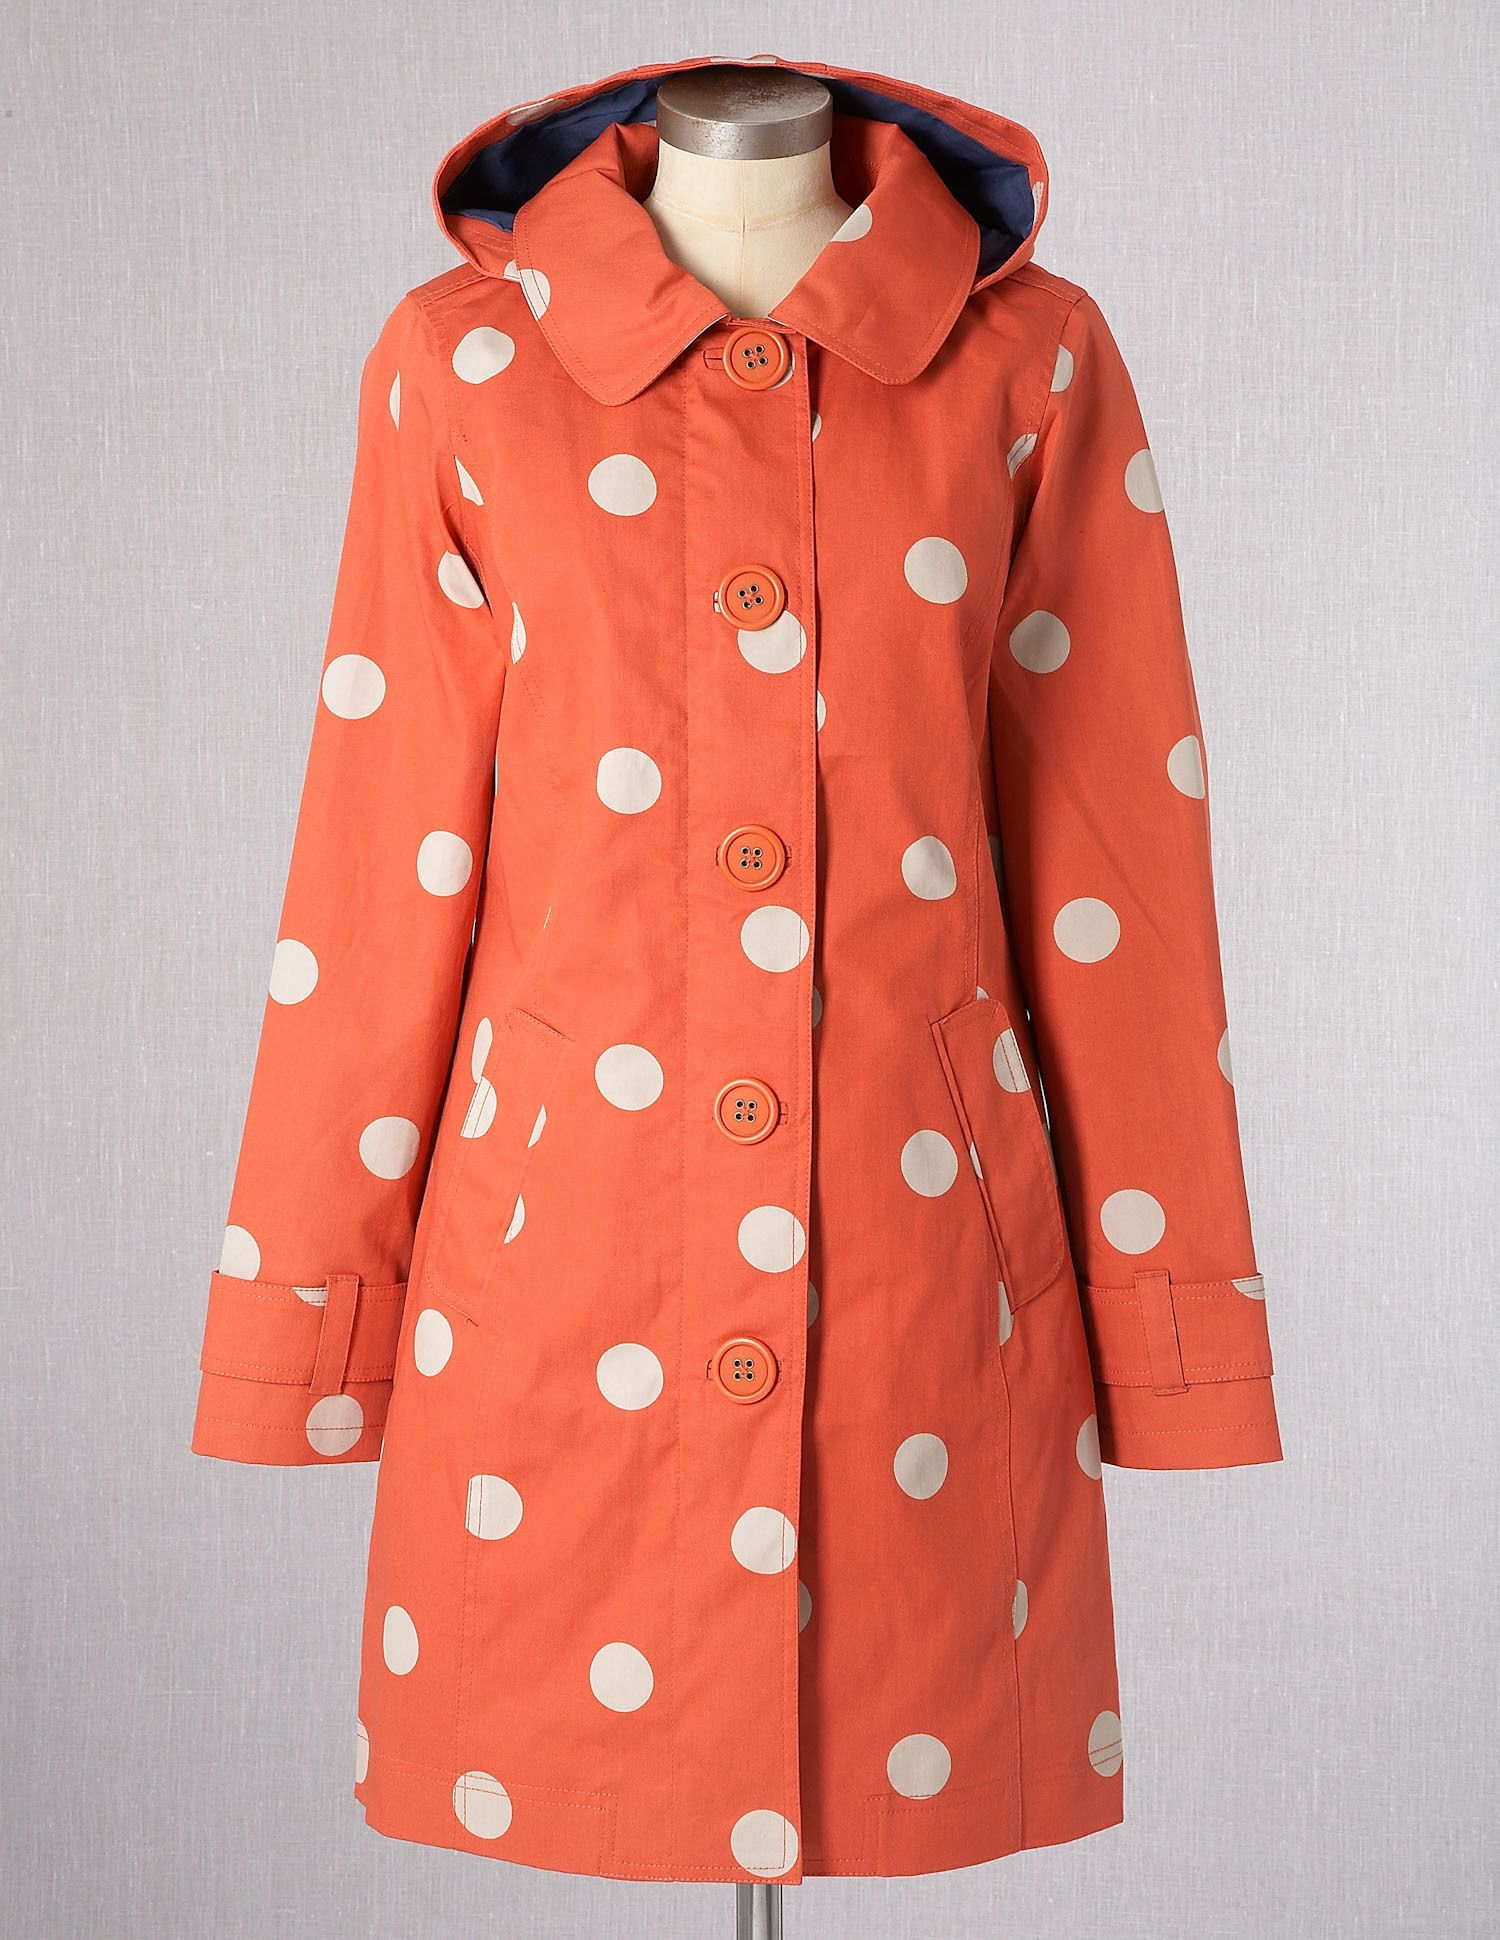 Boden Rainy Day Macs come highly recommended